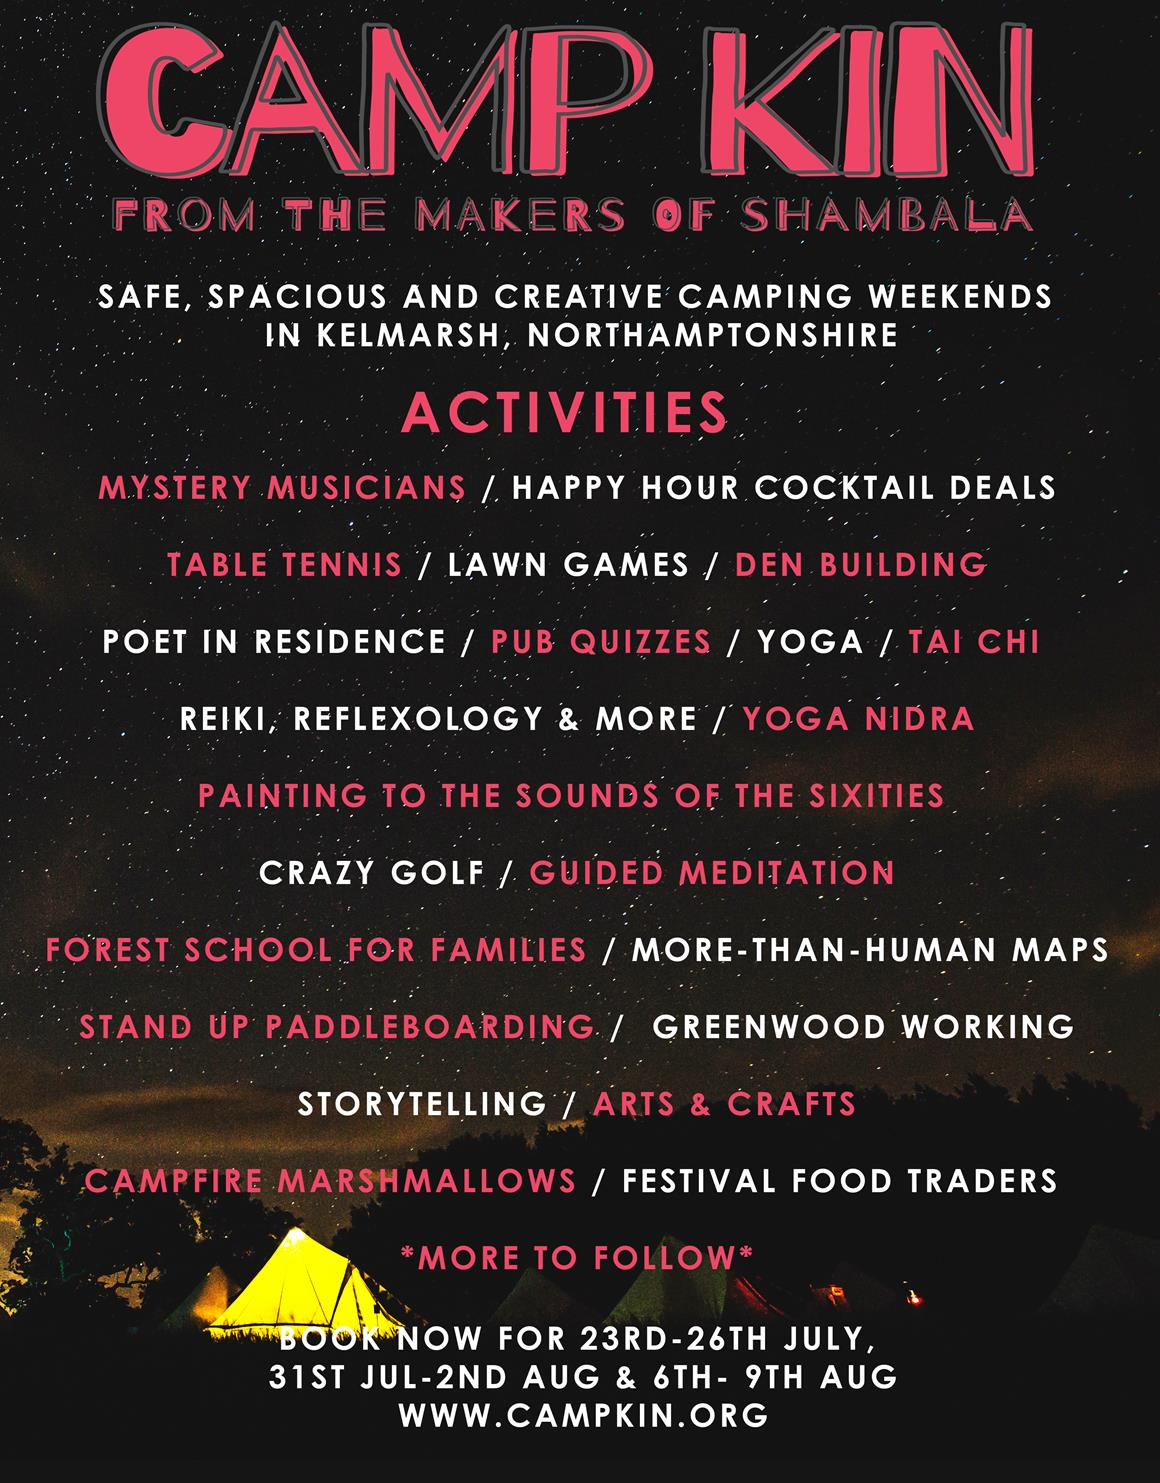 Shambala: The Camp Kin activity line up is here - there's still time to join us! 3